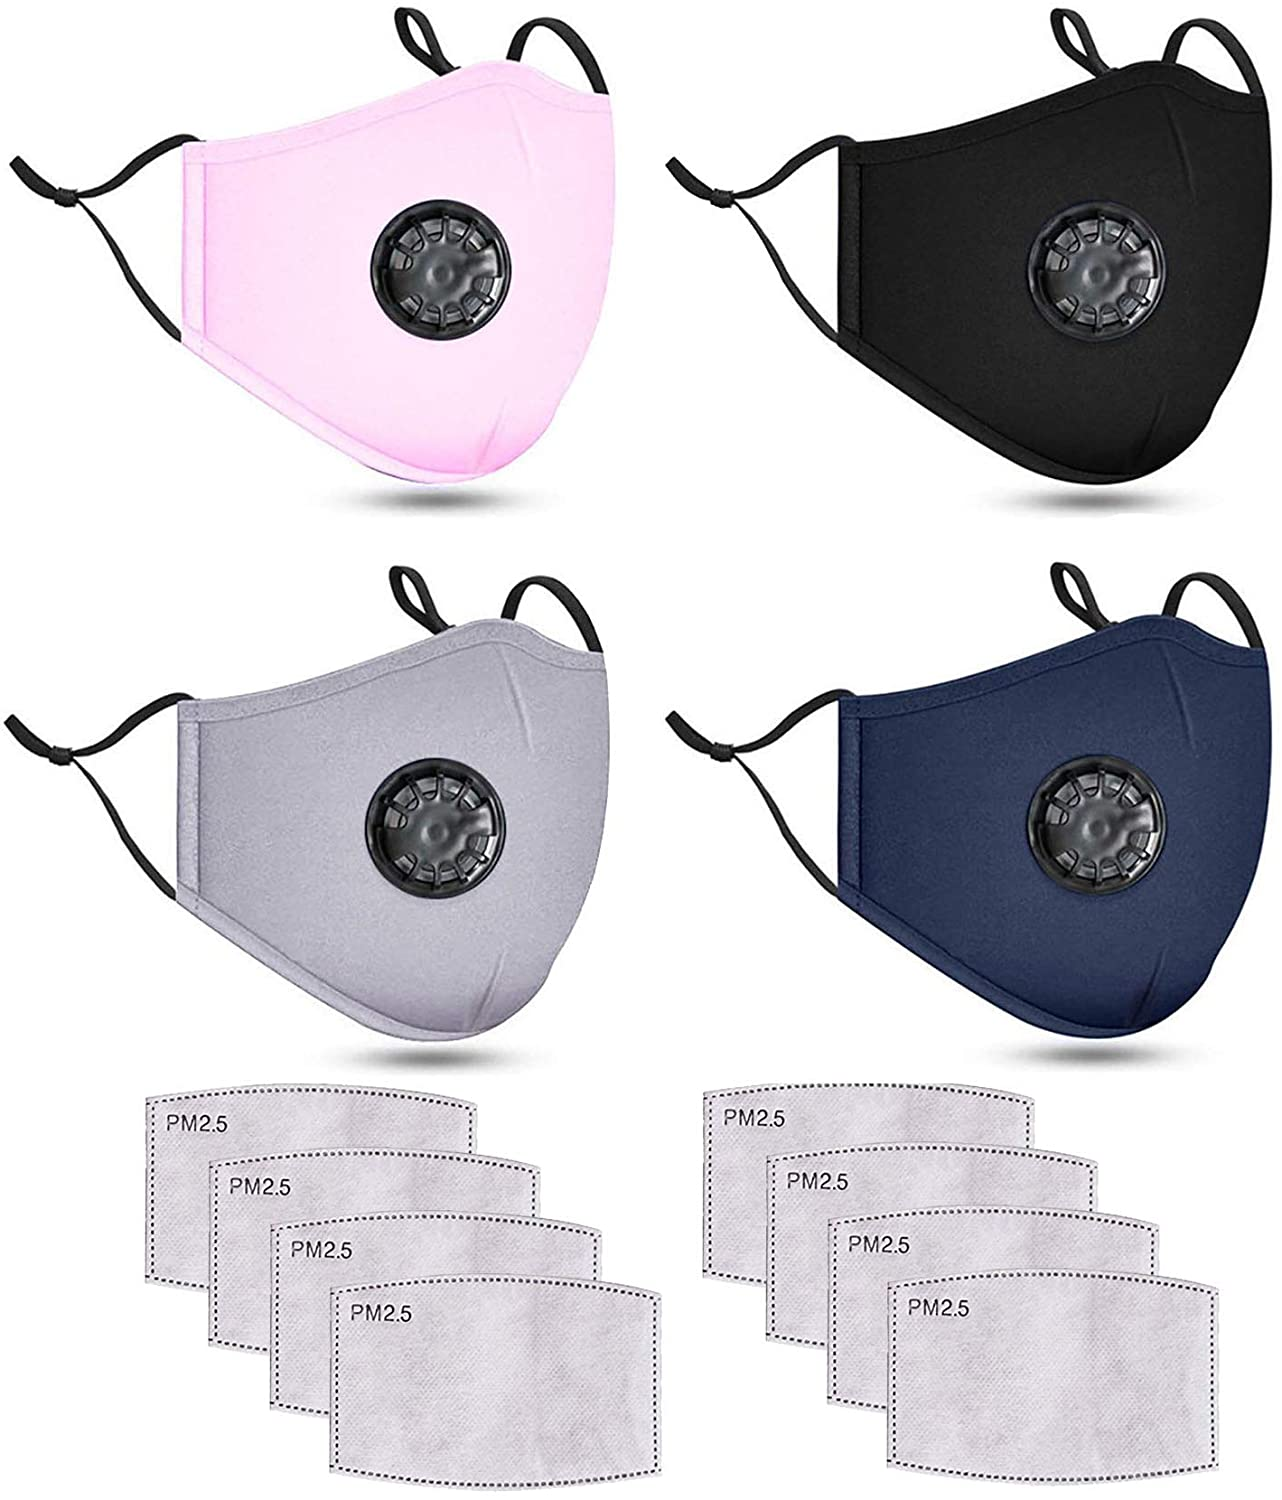 4 Pack Navy Unisex Washable Cotton Face Protection Reusable for Outdoor Adjustable Ear Loops